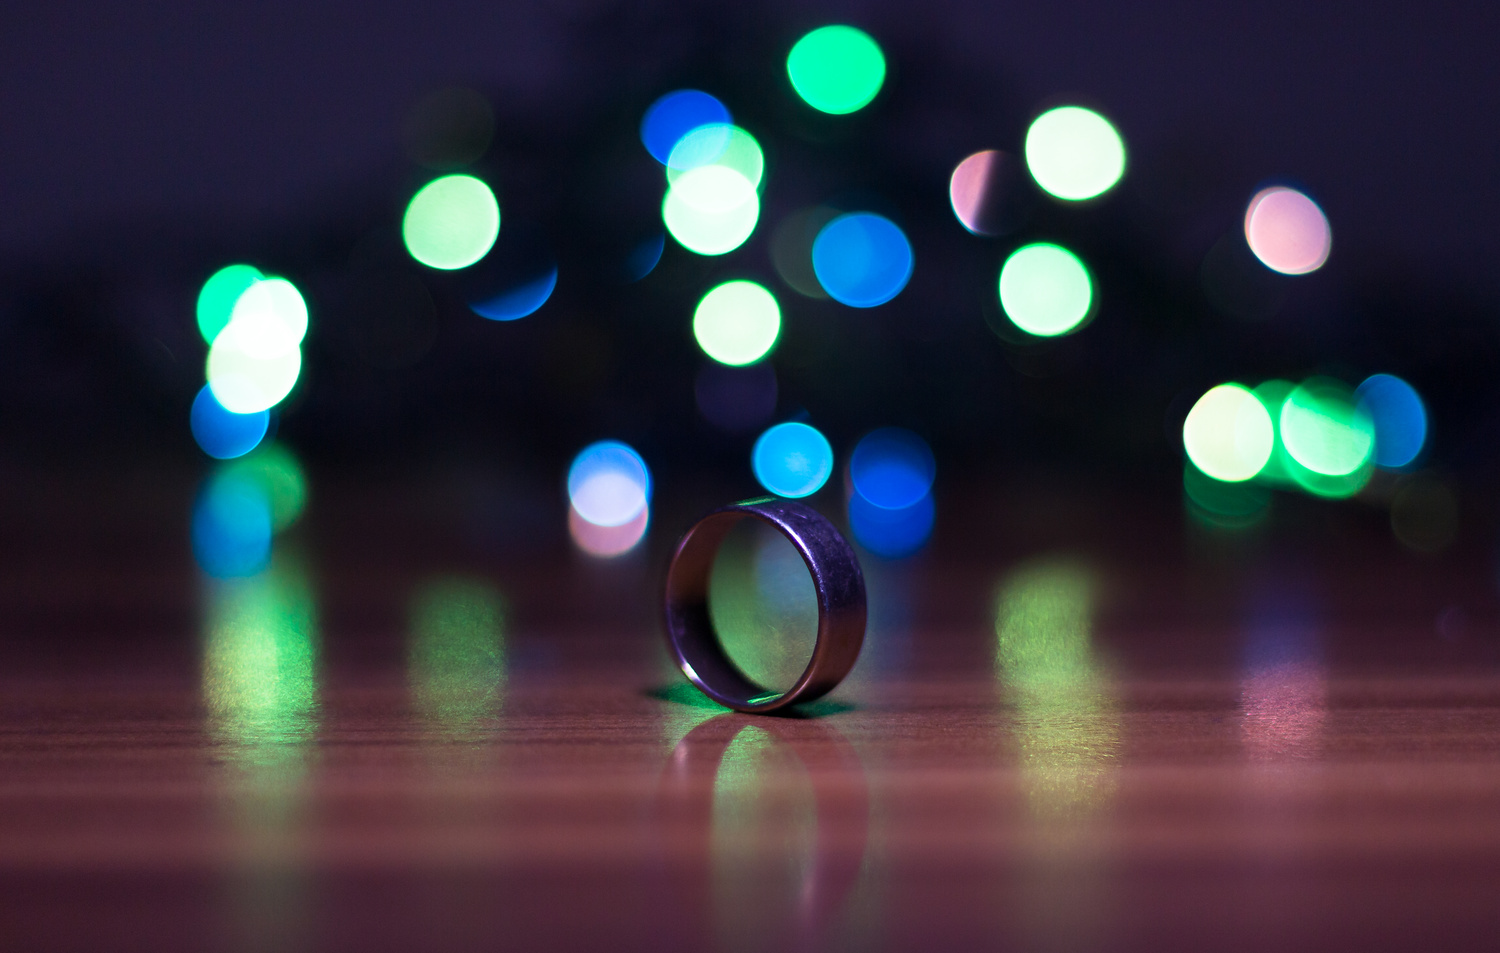 Bokeh Ring by Tm Sk8er